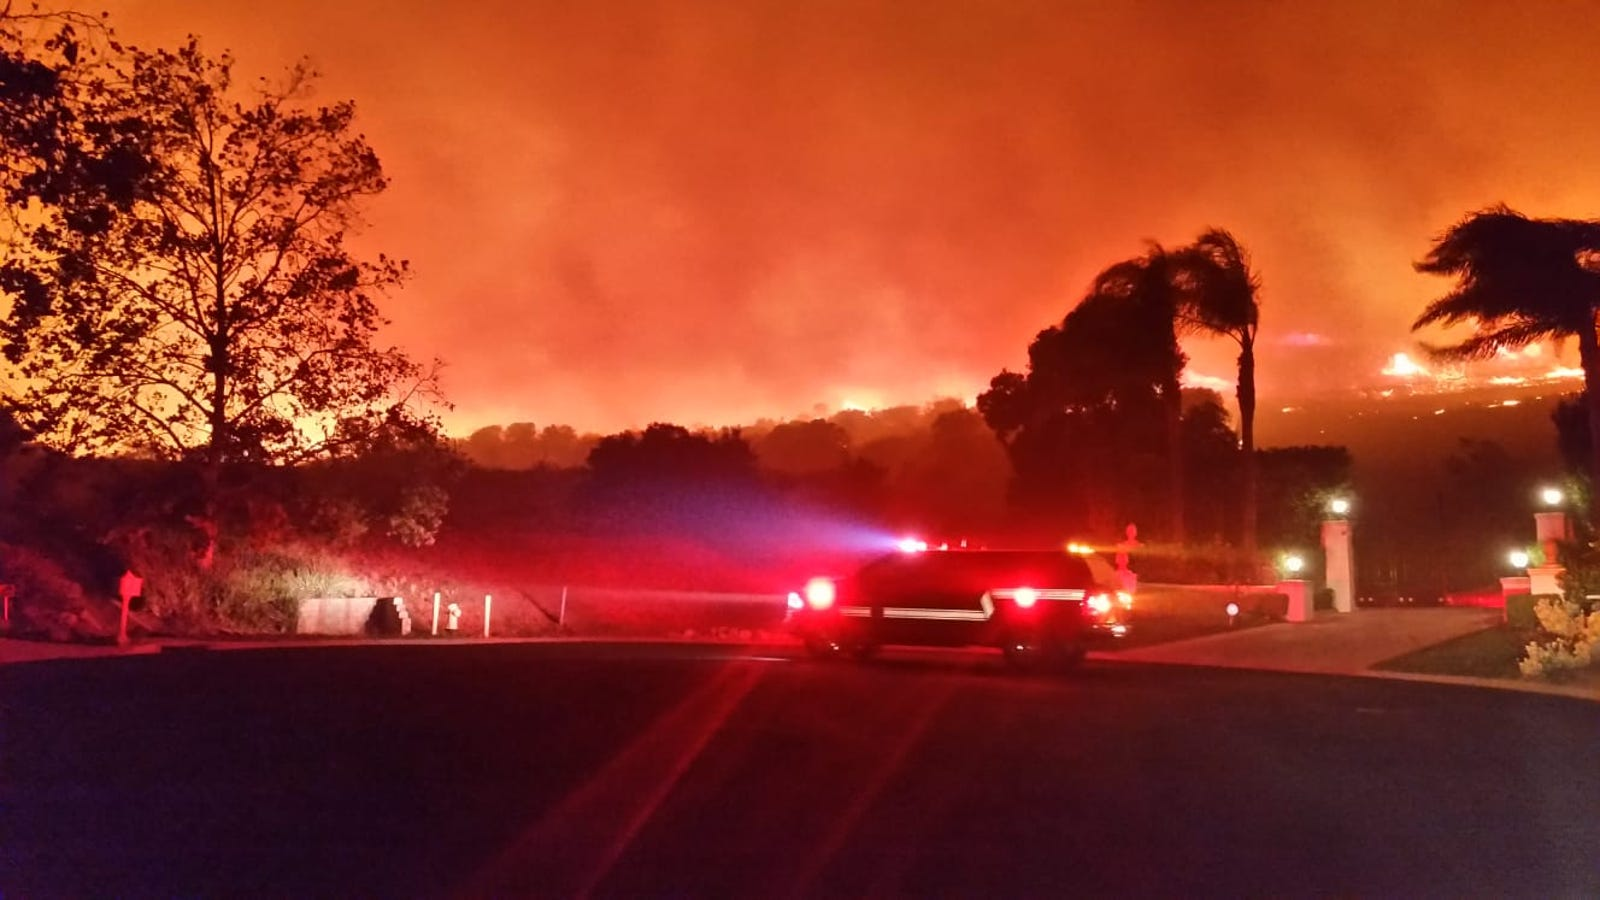 Two Raging Wildfires North of Los Angeles Could Force 75,000 Homes to Evacuate